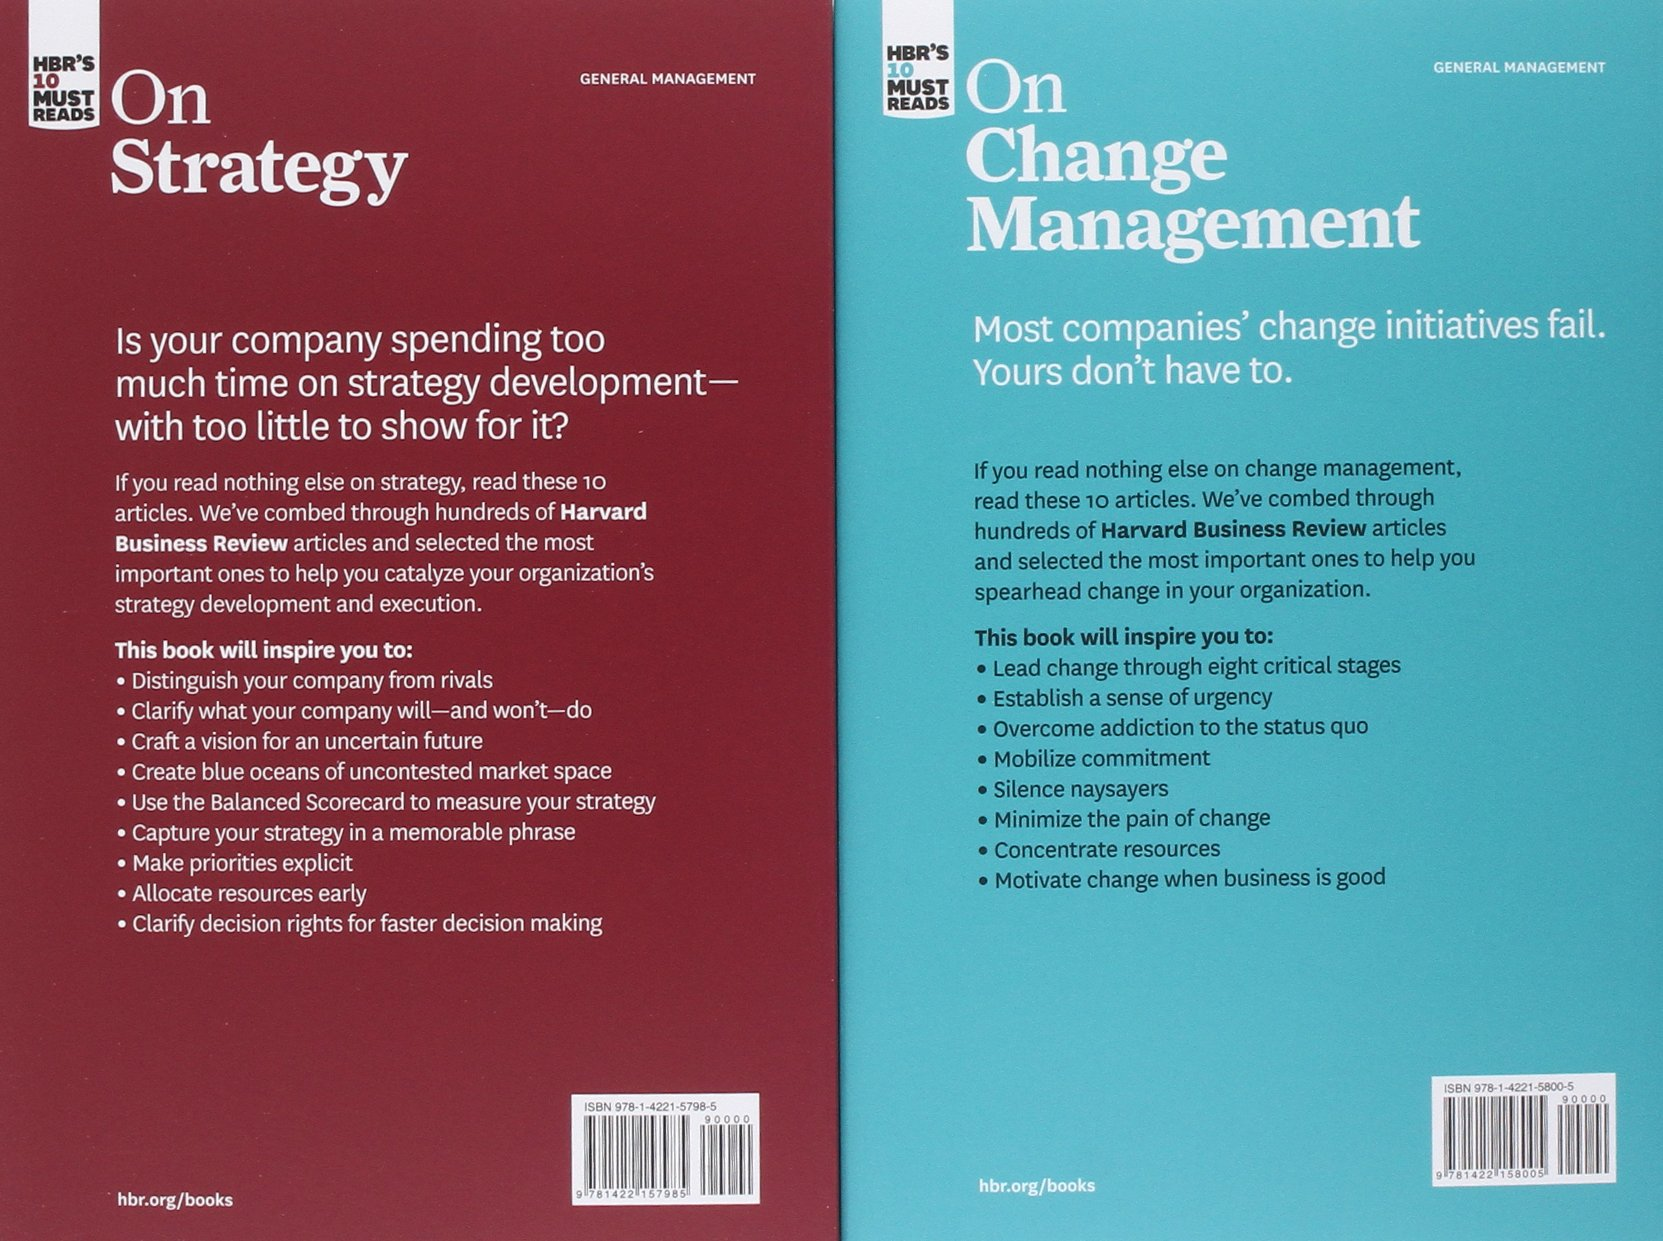 HBR's 10 Must Reads Boxed Set (6 Books) (HBR's 10 Must Reads) by Harvard Business Review Press